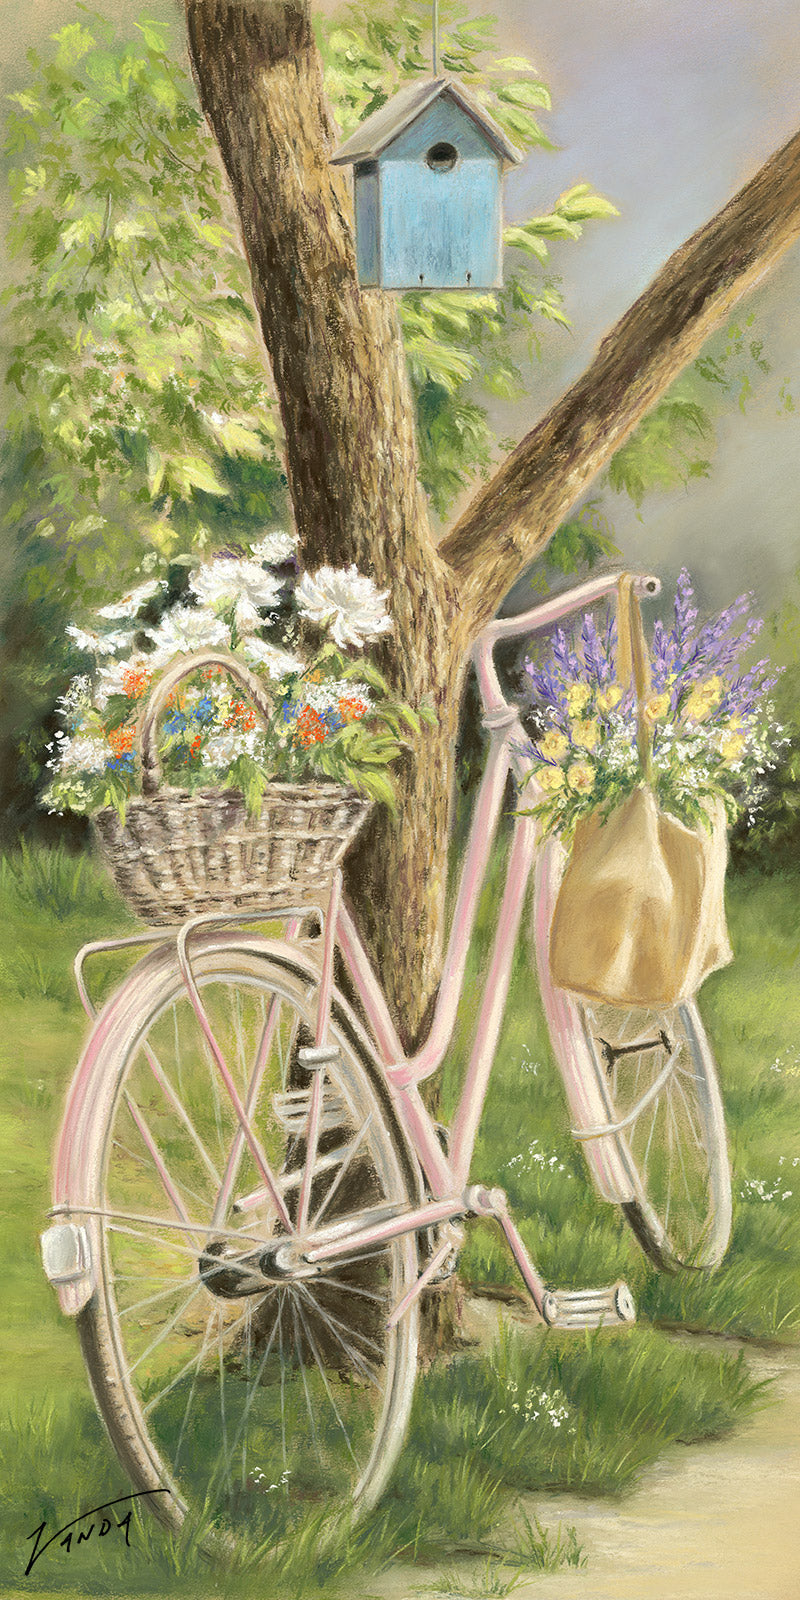 Tyred out - Fine art giclee print - Bicycle, flora, nature, Old, Outside, Painting, Still life, tree